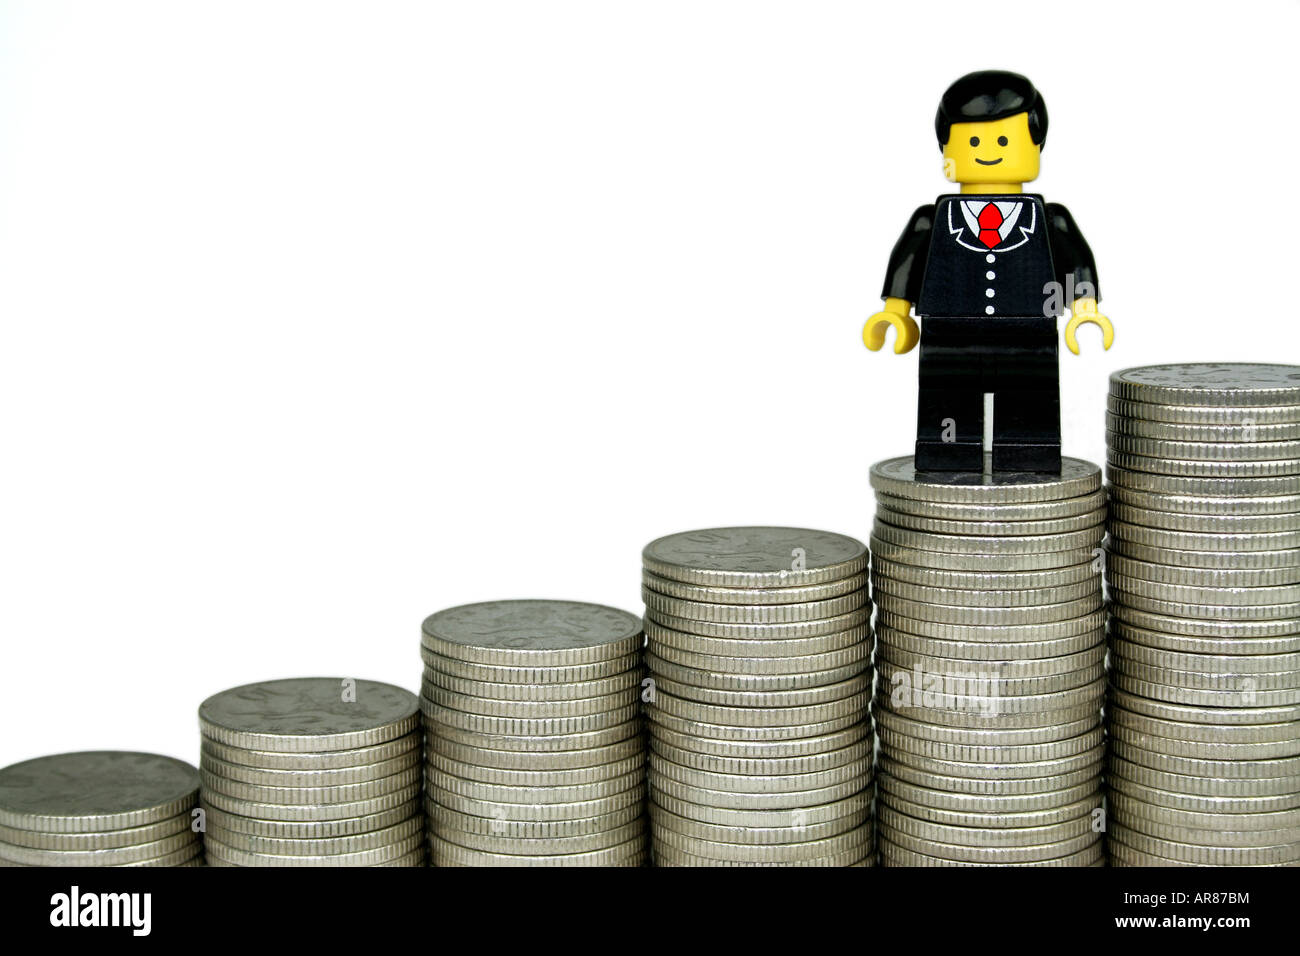 Image Gallery Lego Money